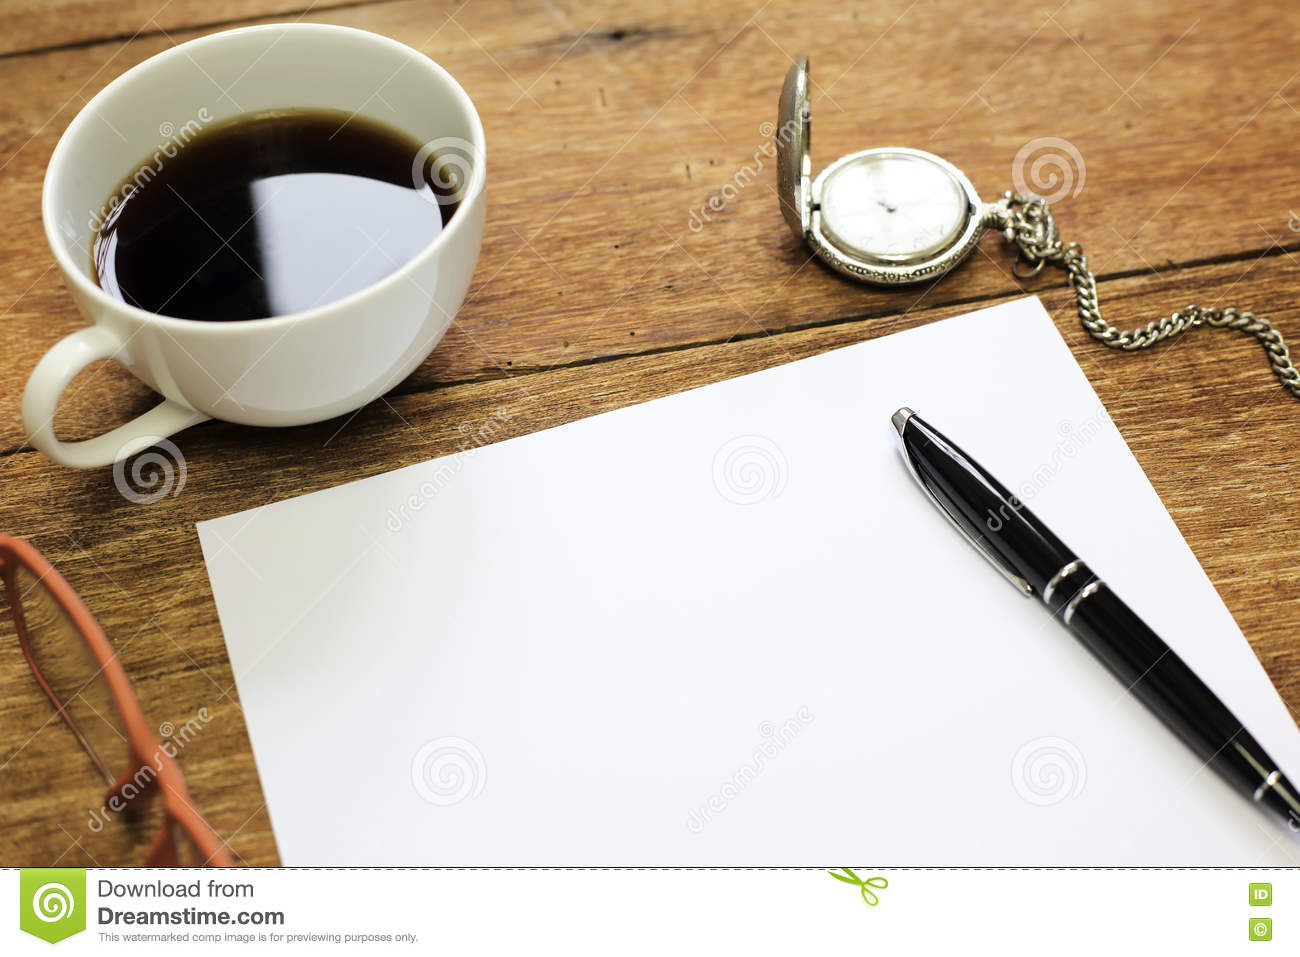 Top office table cup Coffee Top View Of Office Table With Notebook Blank Paper Pen Cup Dreamstimecom Top View Of Office Table With Notebook Blank Paper Pen Cup Stock